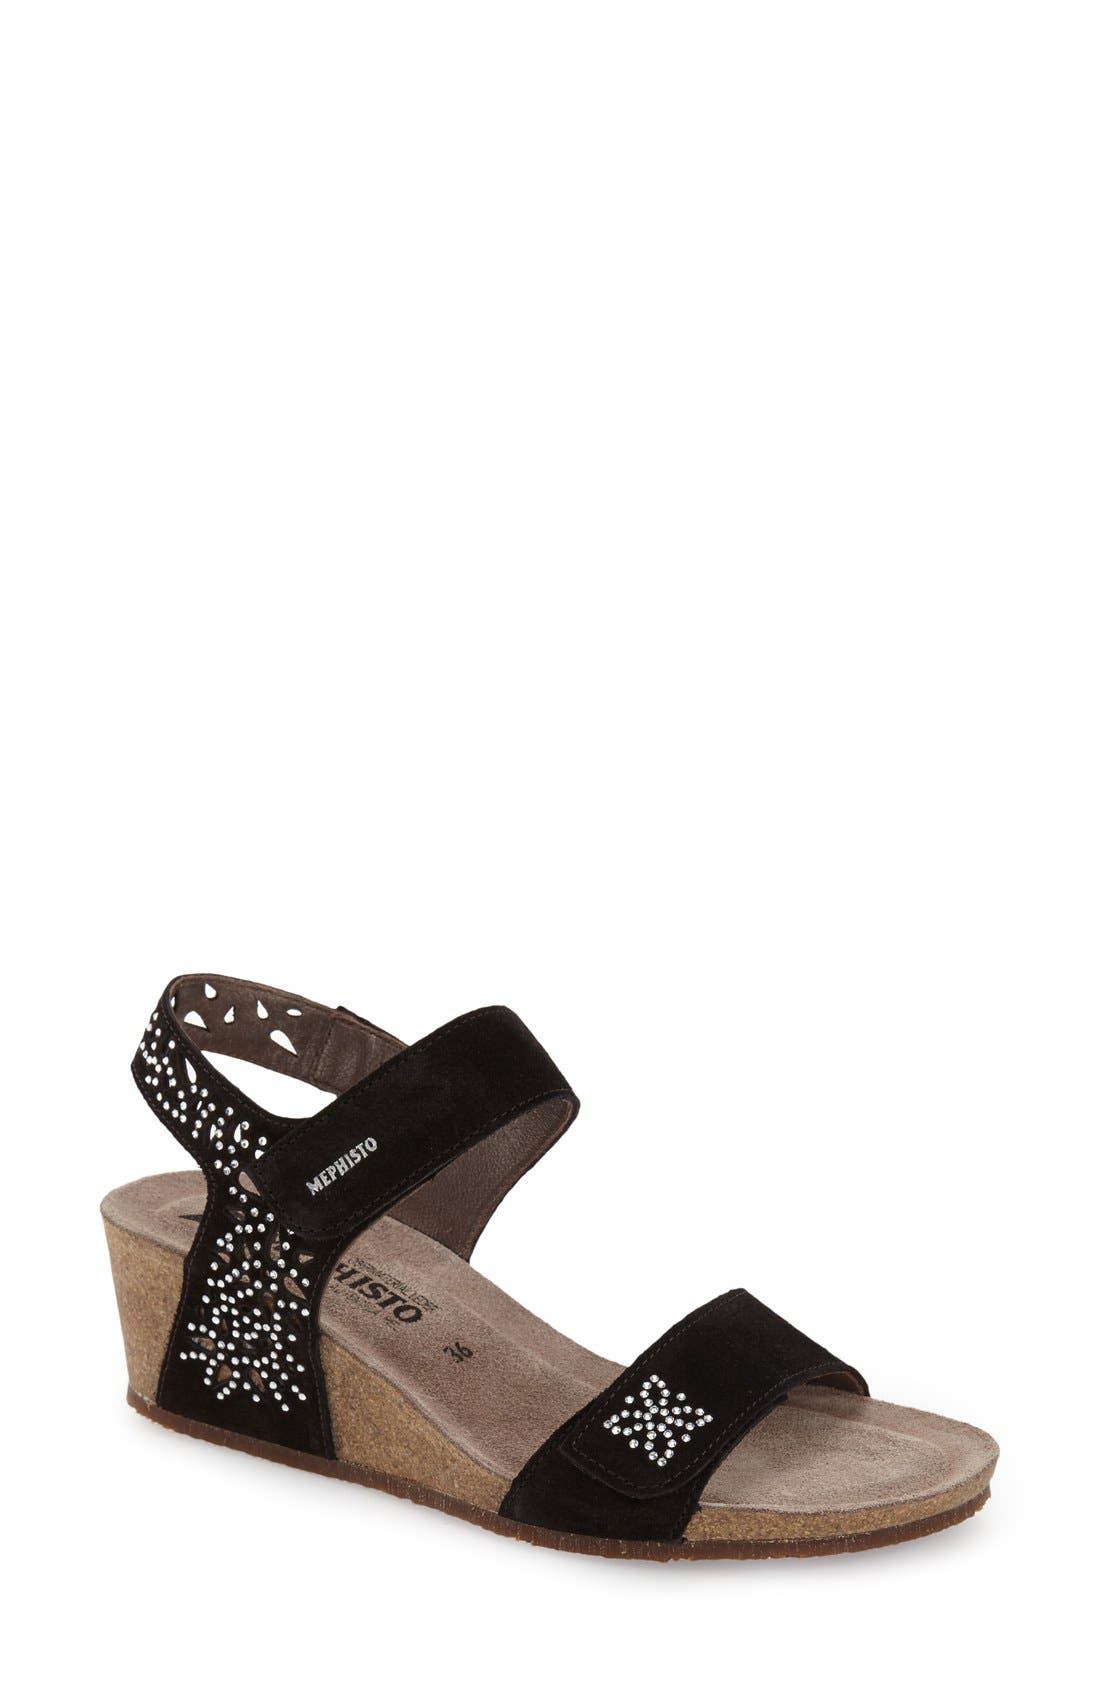 'Marie - Spark' Wedge Sandal,                             Main thumbnail 1, color,                             BLACK SUEDE